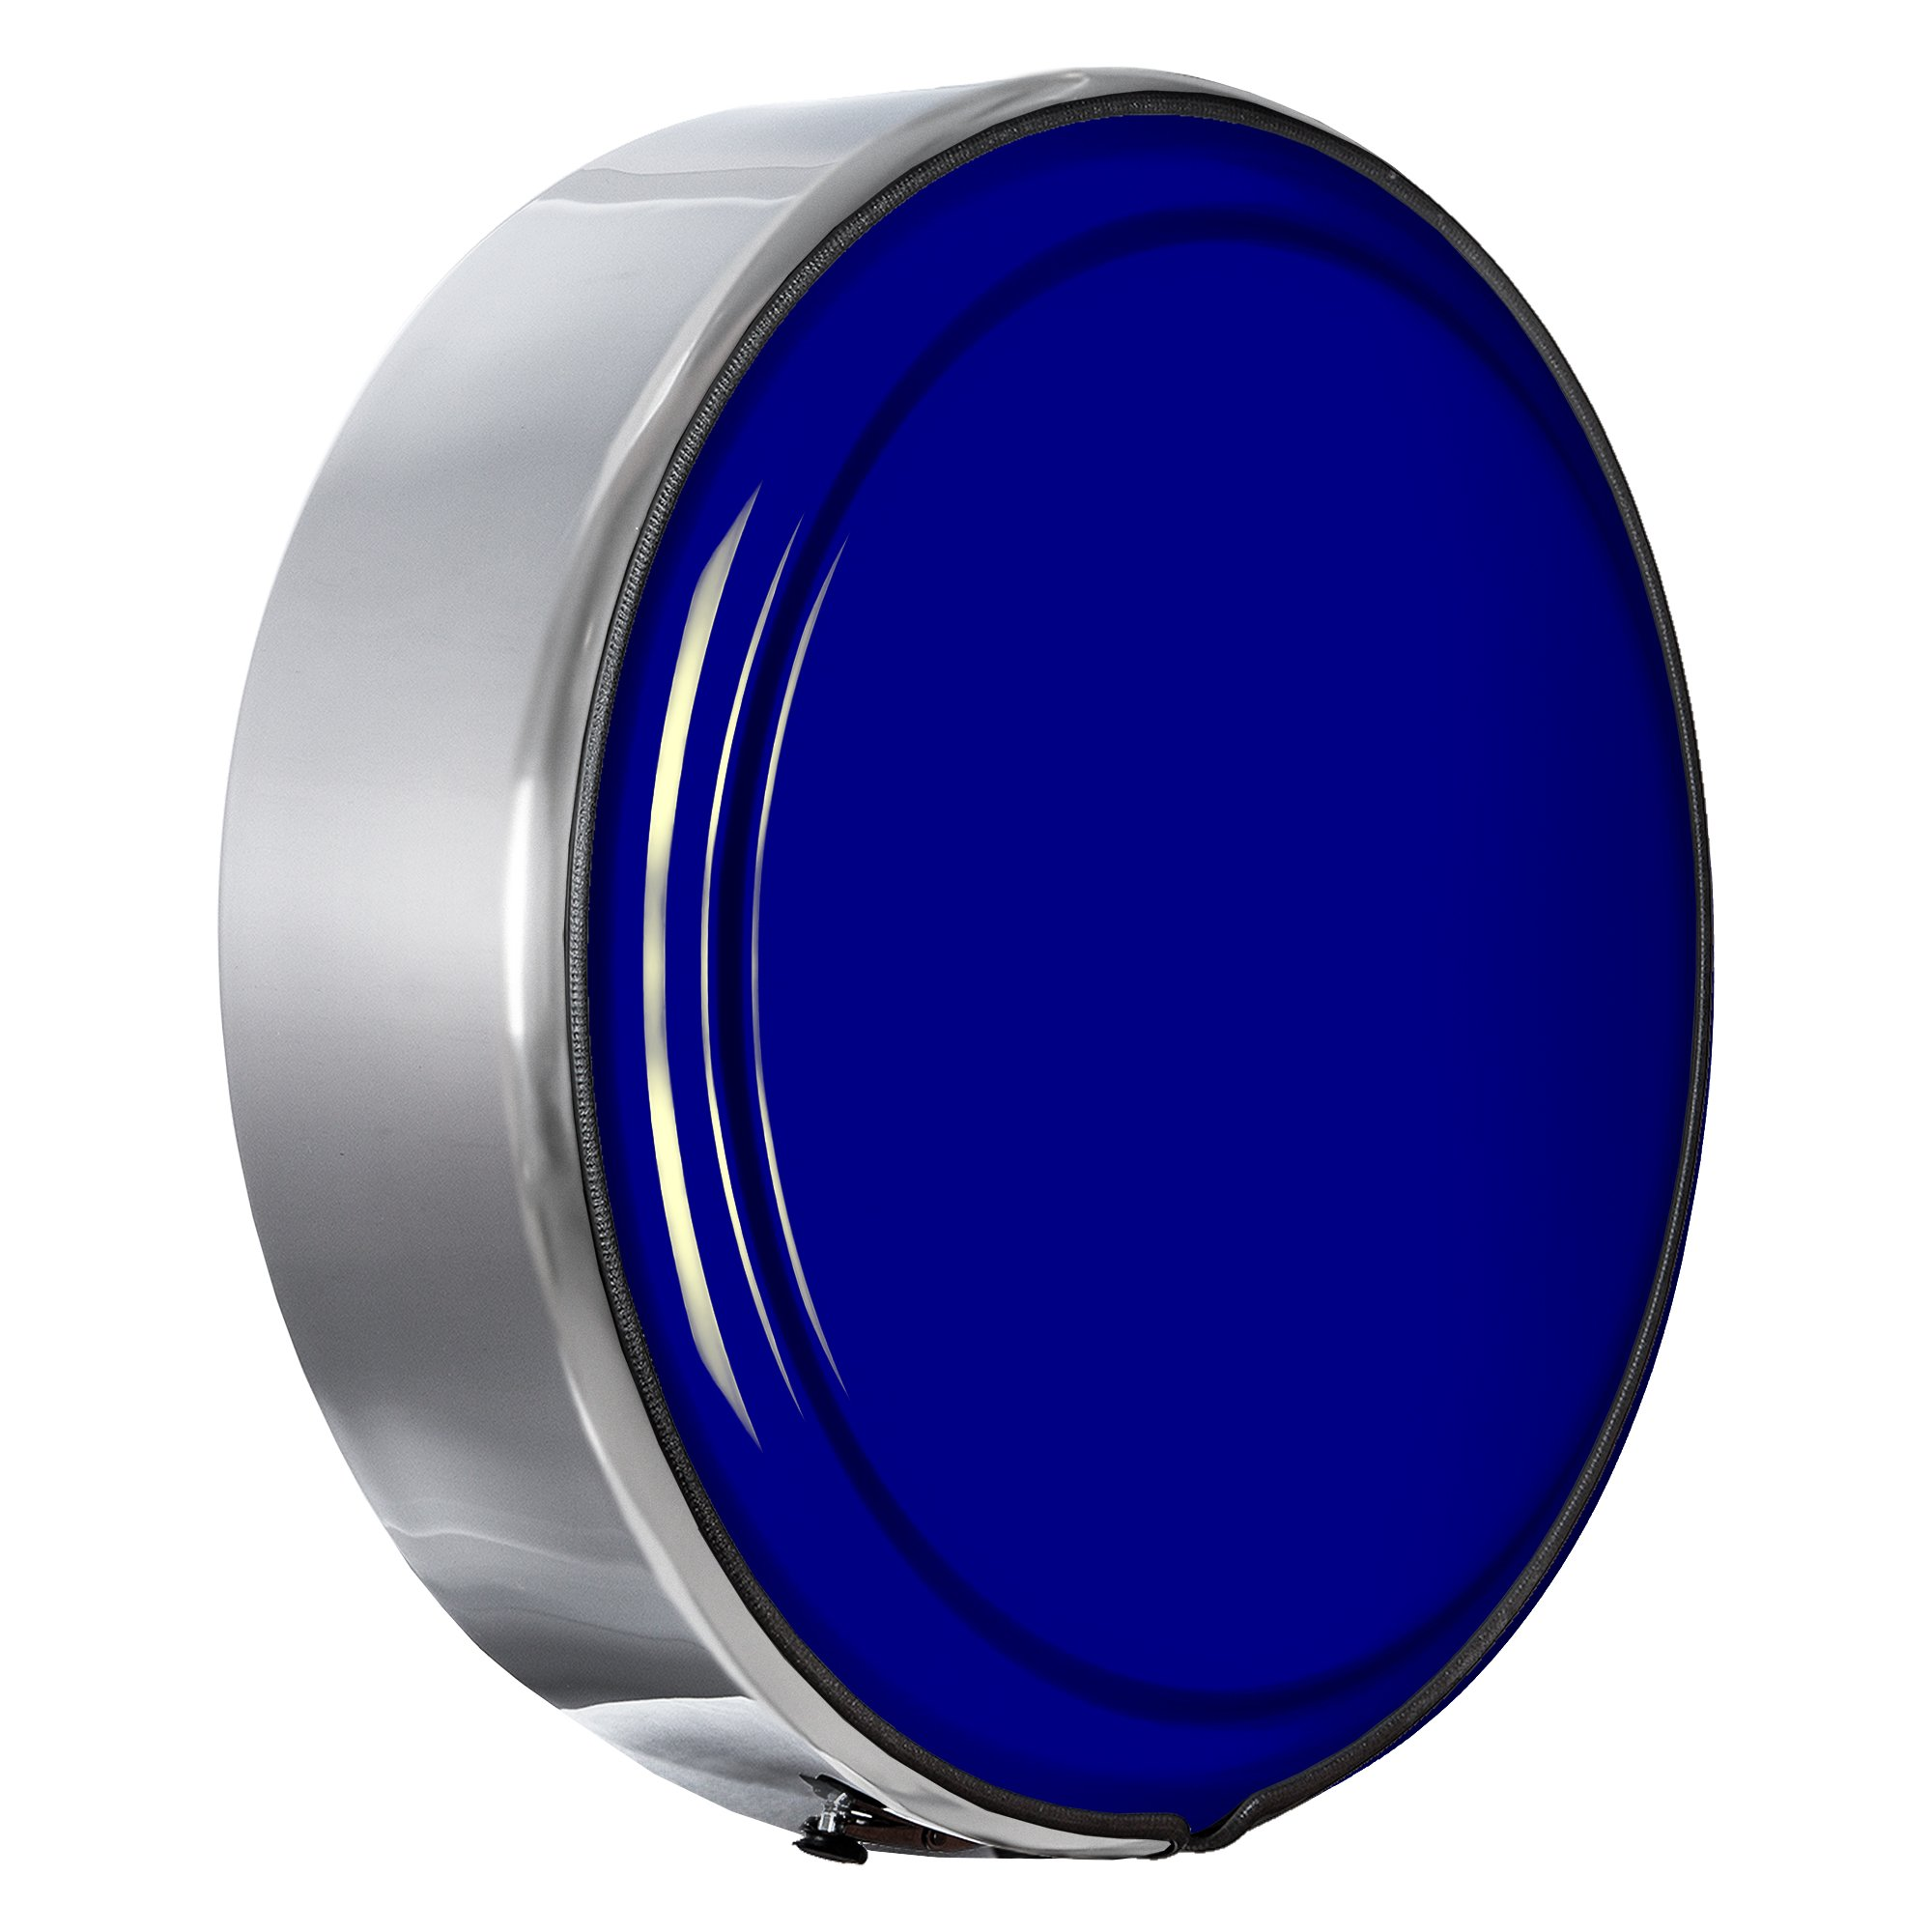 Hummer H3 - 33'' MasterSeries Hard Tire Cover - (Painted Plastic Face Plate with Polished Stainless Steel Ring) - 33'' All Terrain Blue